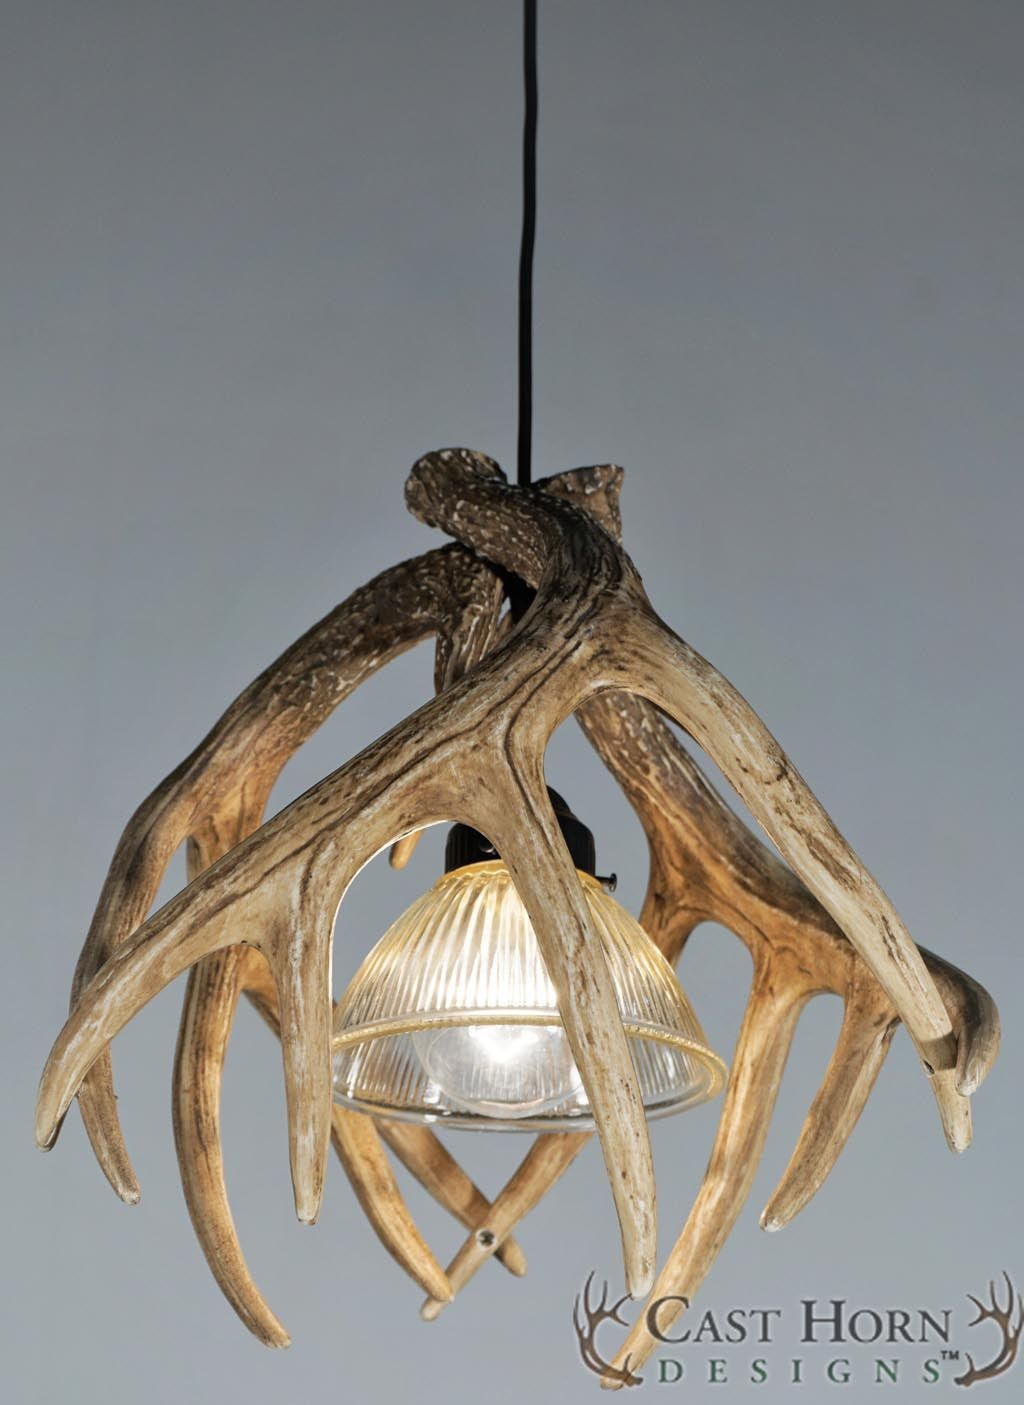 Replica Deer Antler Chandelier Deer Antler Decor